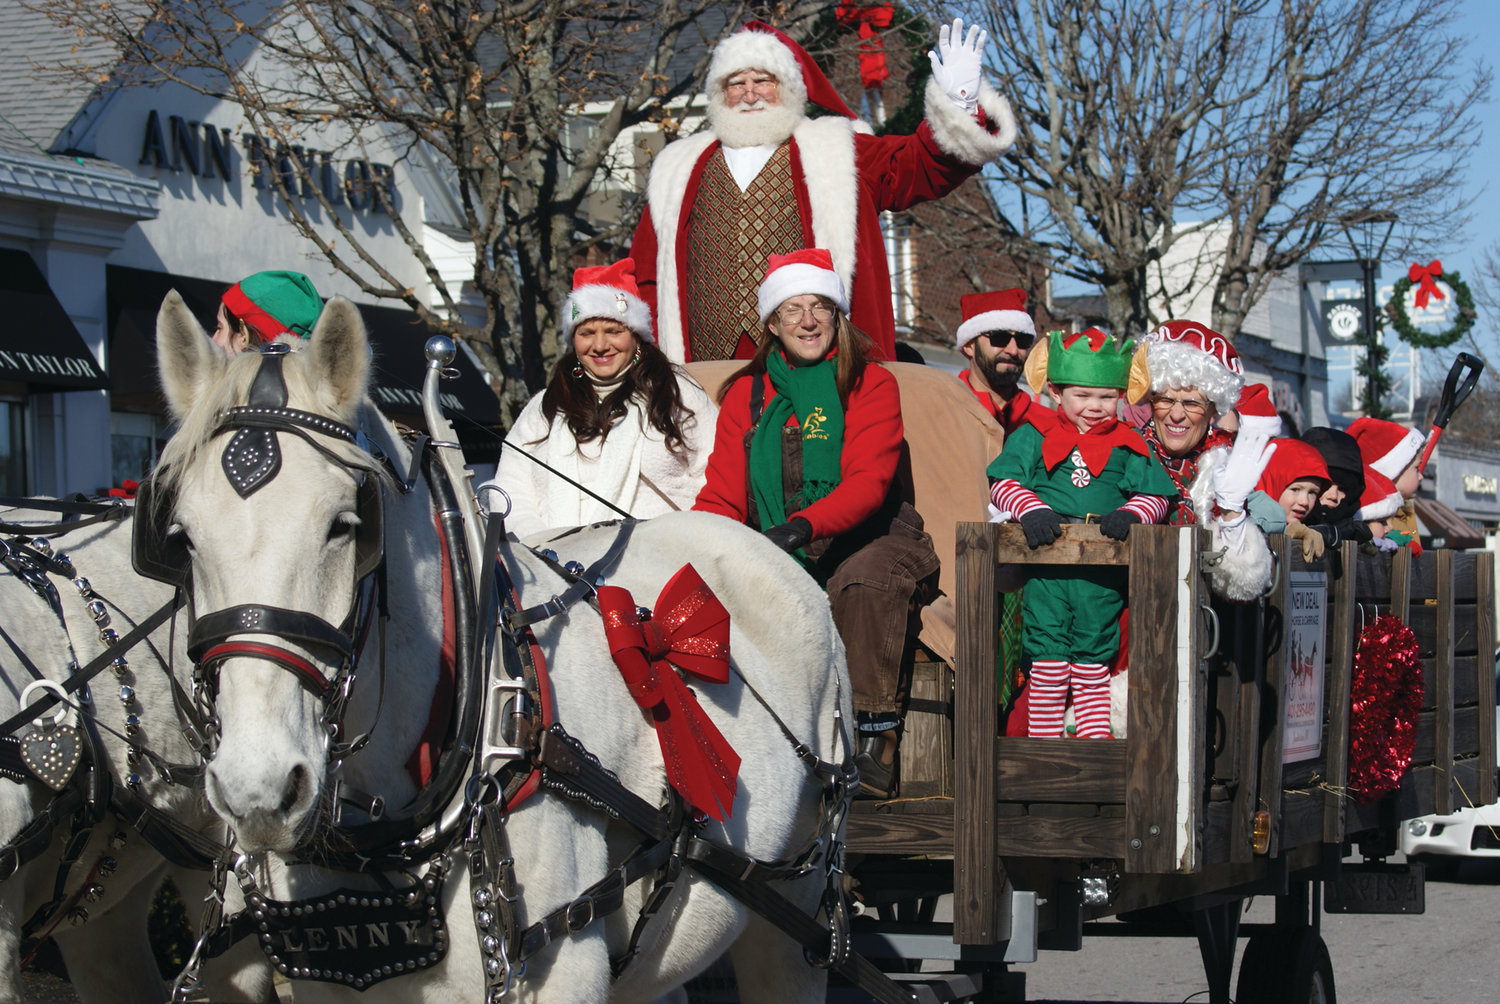 COUNTDOWN TO CHRISTMAS: Santa Claus and Mrs. Claus are greeted by hundreds of children of all ages in Garden City Center on Saturday. They arrived in a horse-drawn wagon pulled by horses Eddy and Lenny and driven by New Deal Horse & Carriage co-owner Julie Kliever and horse handler Melinda Michelotti.